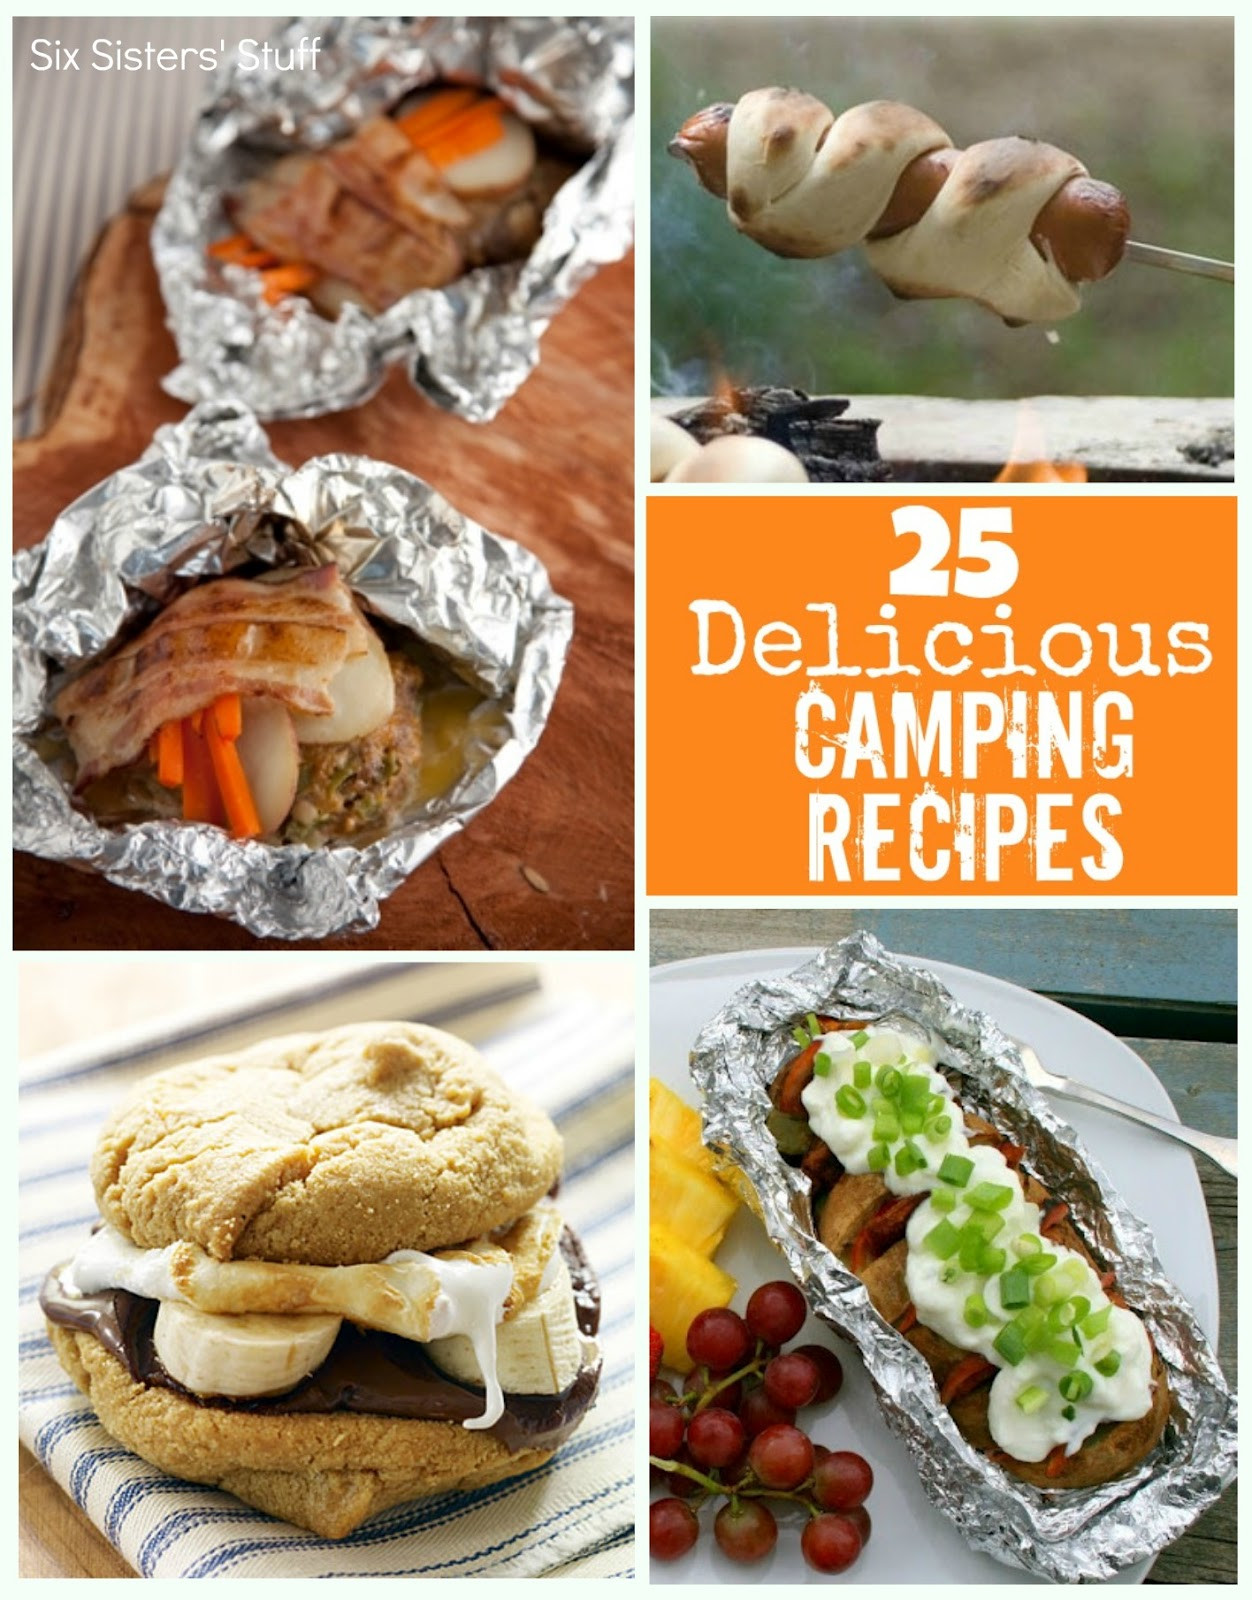 Dinner Ideas For Camping  25 Delicious Camping Recipes Six Sisters Stuff